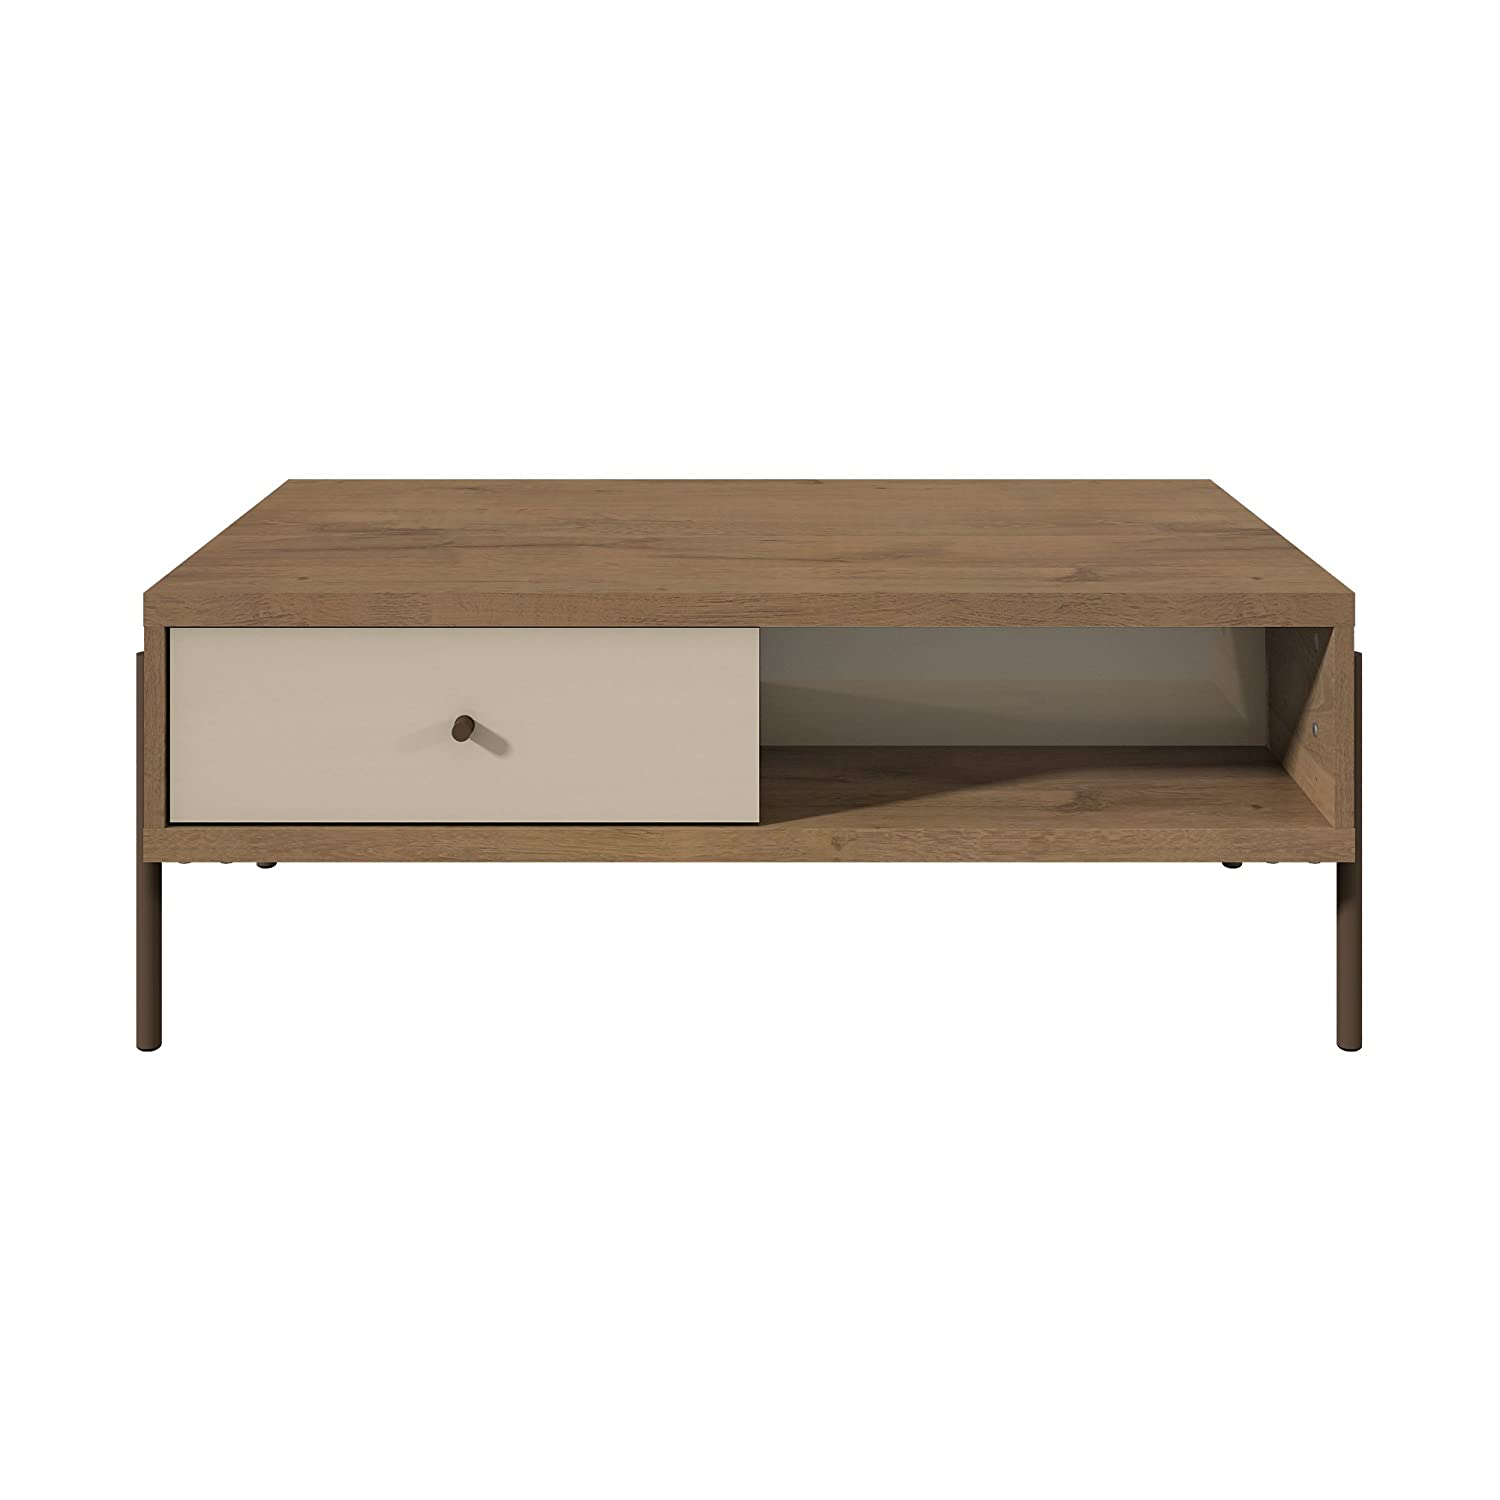 Oak Trendy White Desk Concepts Amazon.com: Manhattan Comfort 350644 Joy Series Modern Double Sided Coffee  Table Off-White: Kitchen u0026 Dining